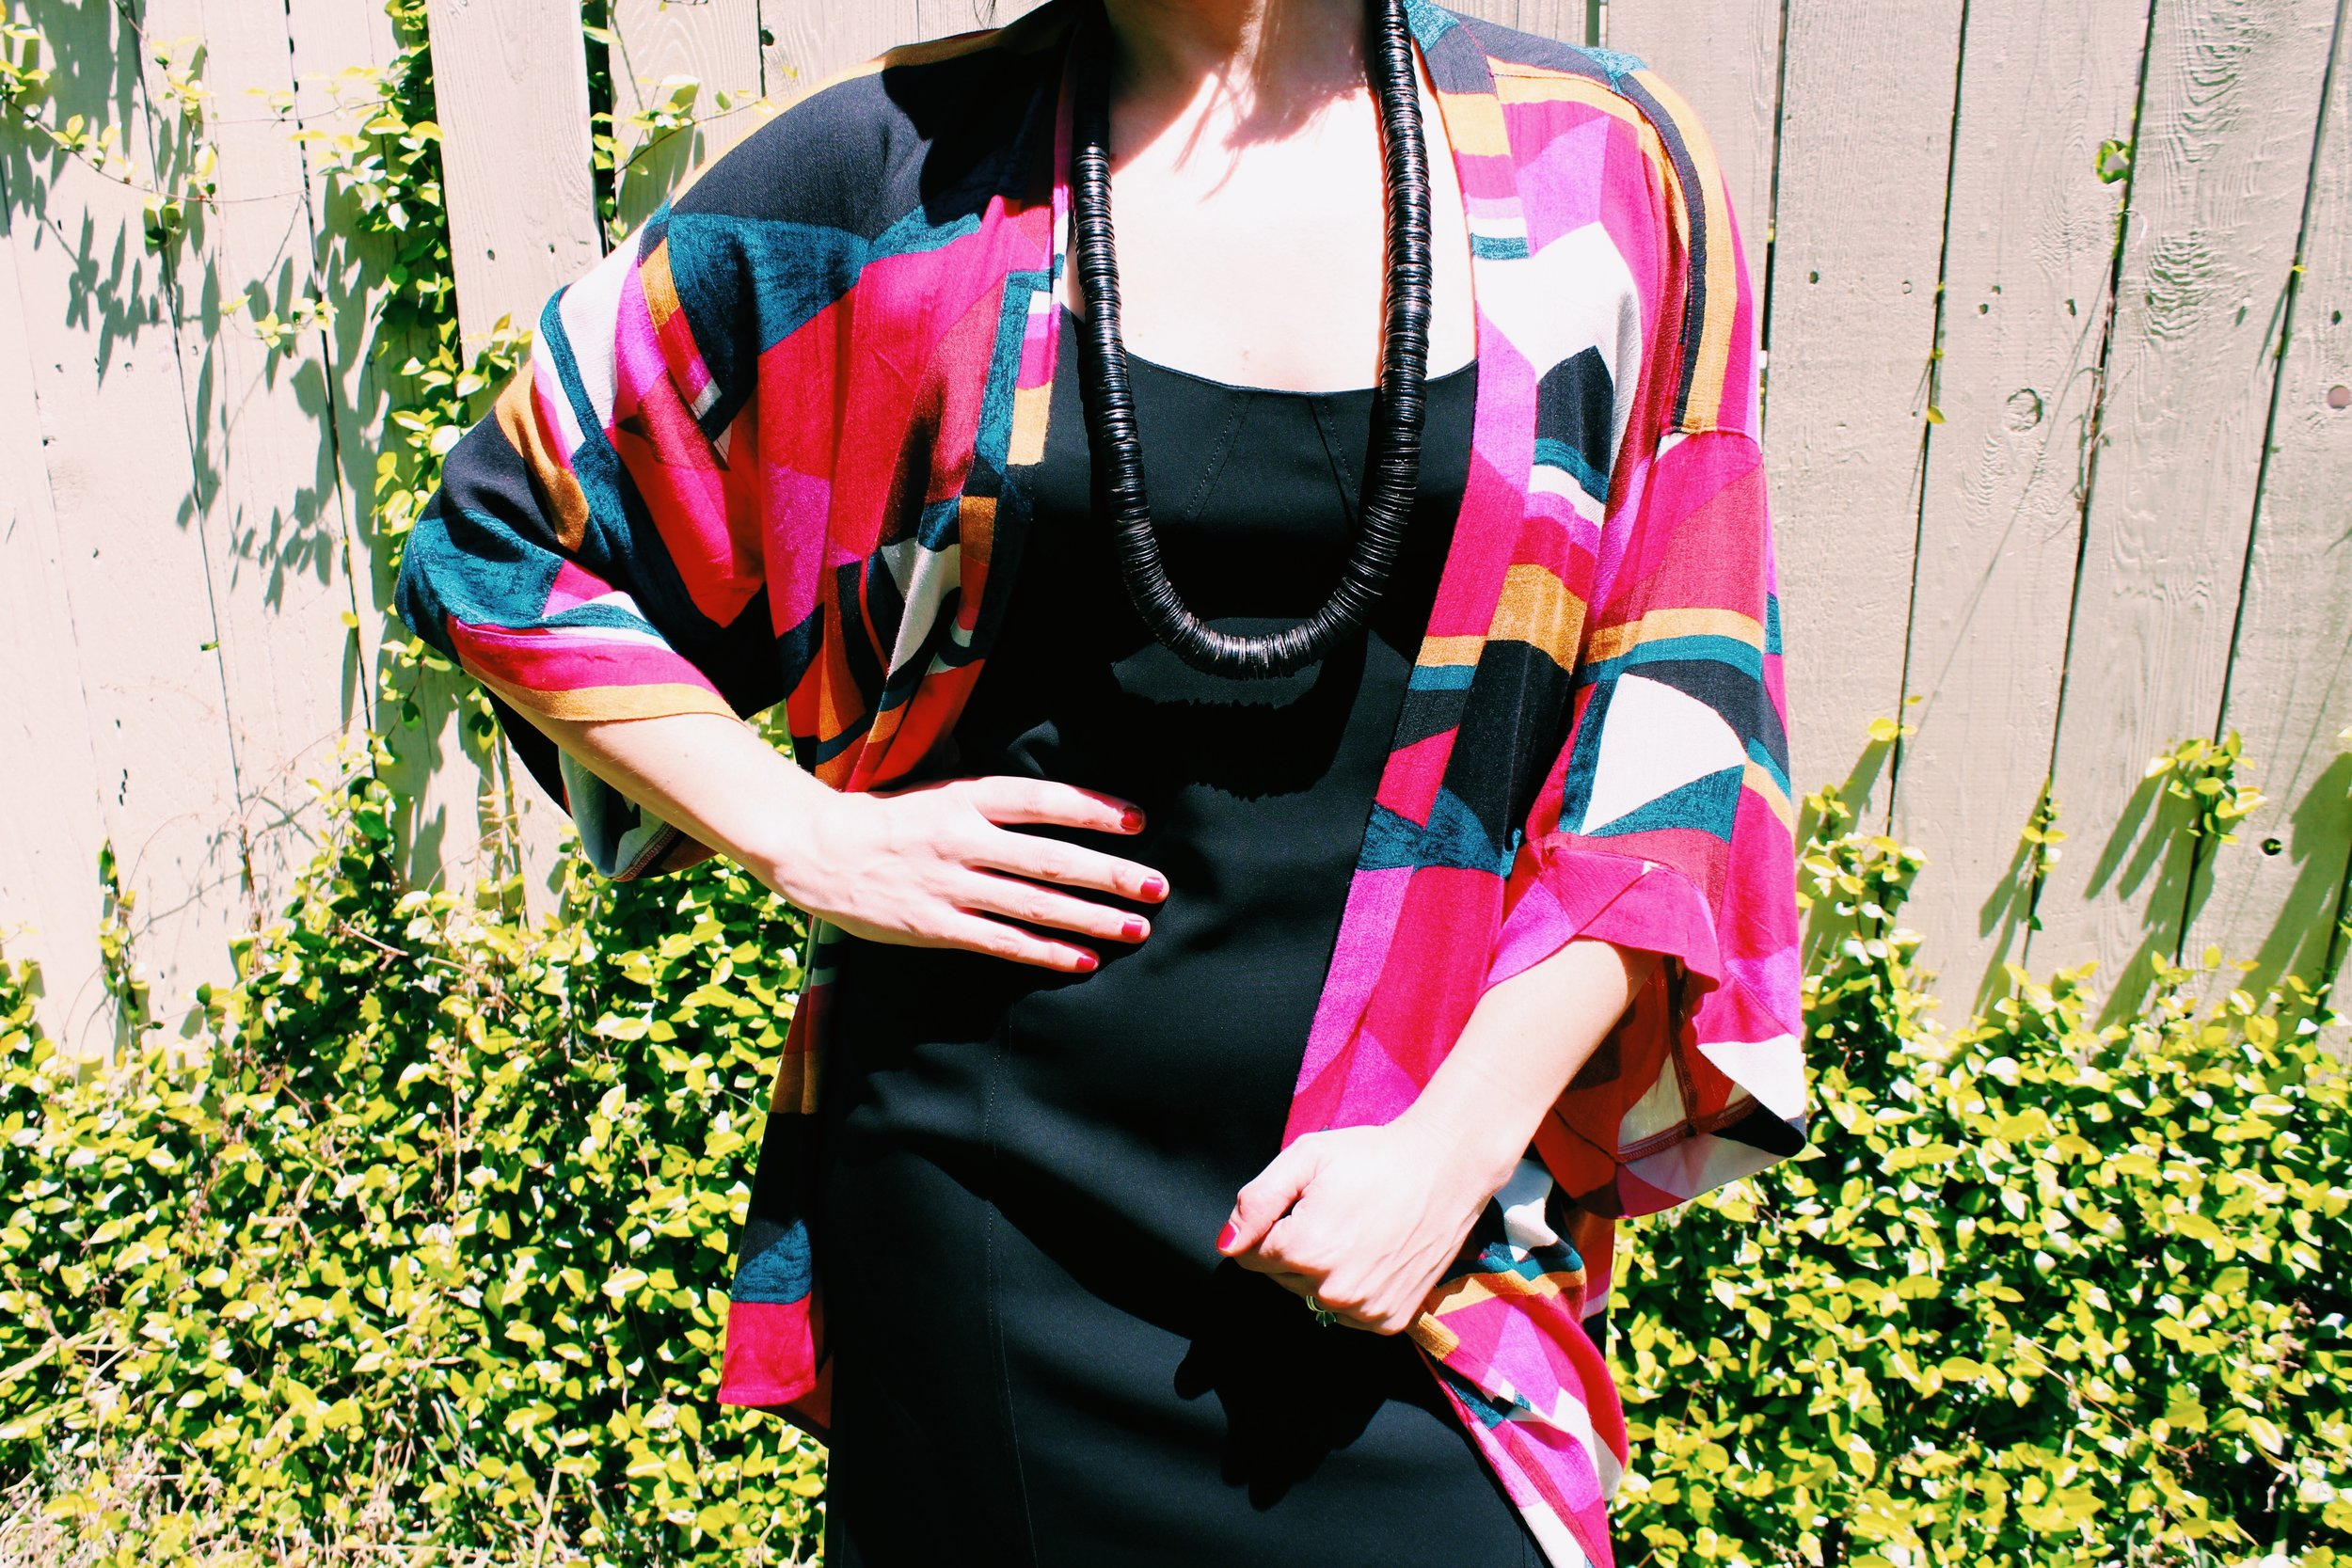 Raquel Greer Gordian adds a vibrant kimono, chevron stacked heels, and a long necklace to a black dress to spruce it up for spring and summer 2019.